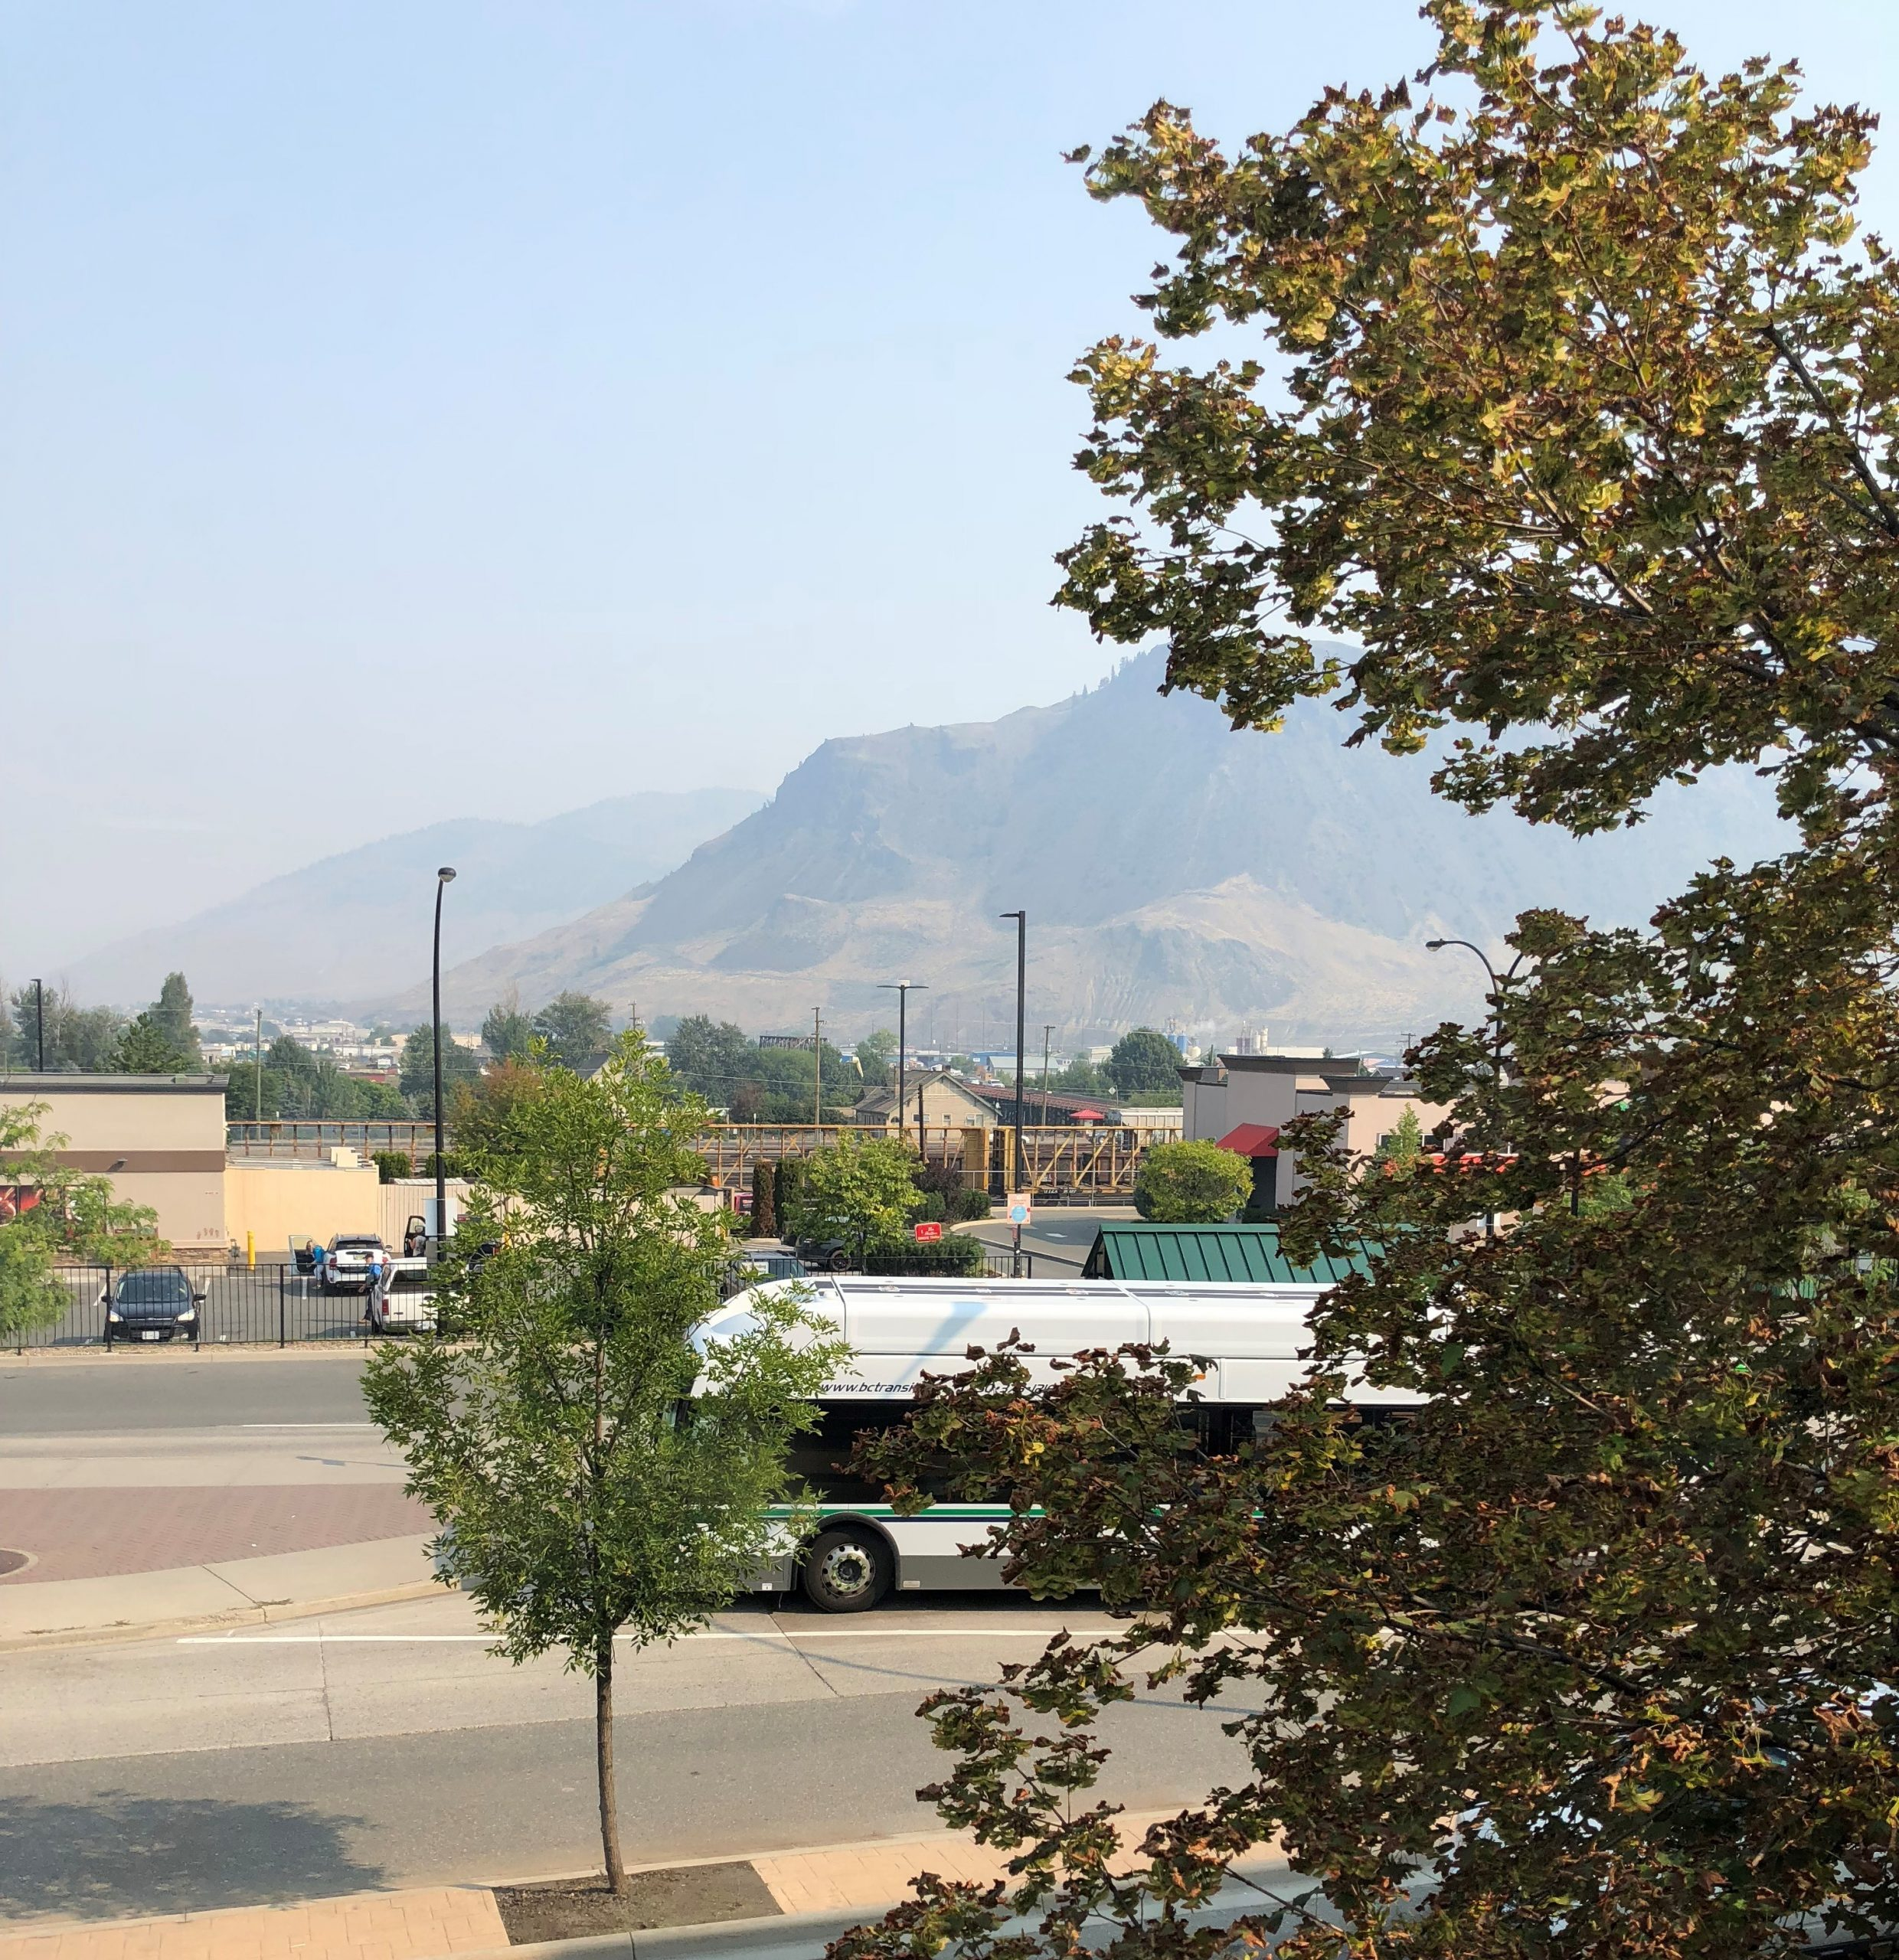 Air quality in Kamloops is now in the moderate range